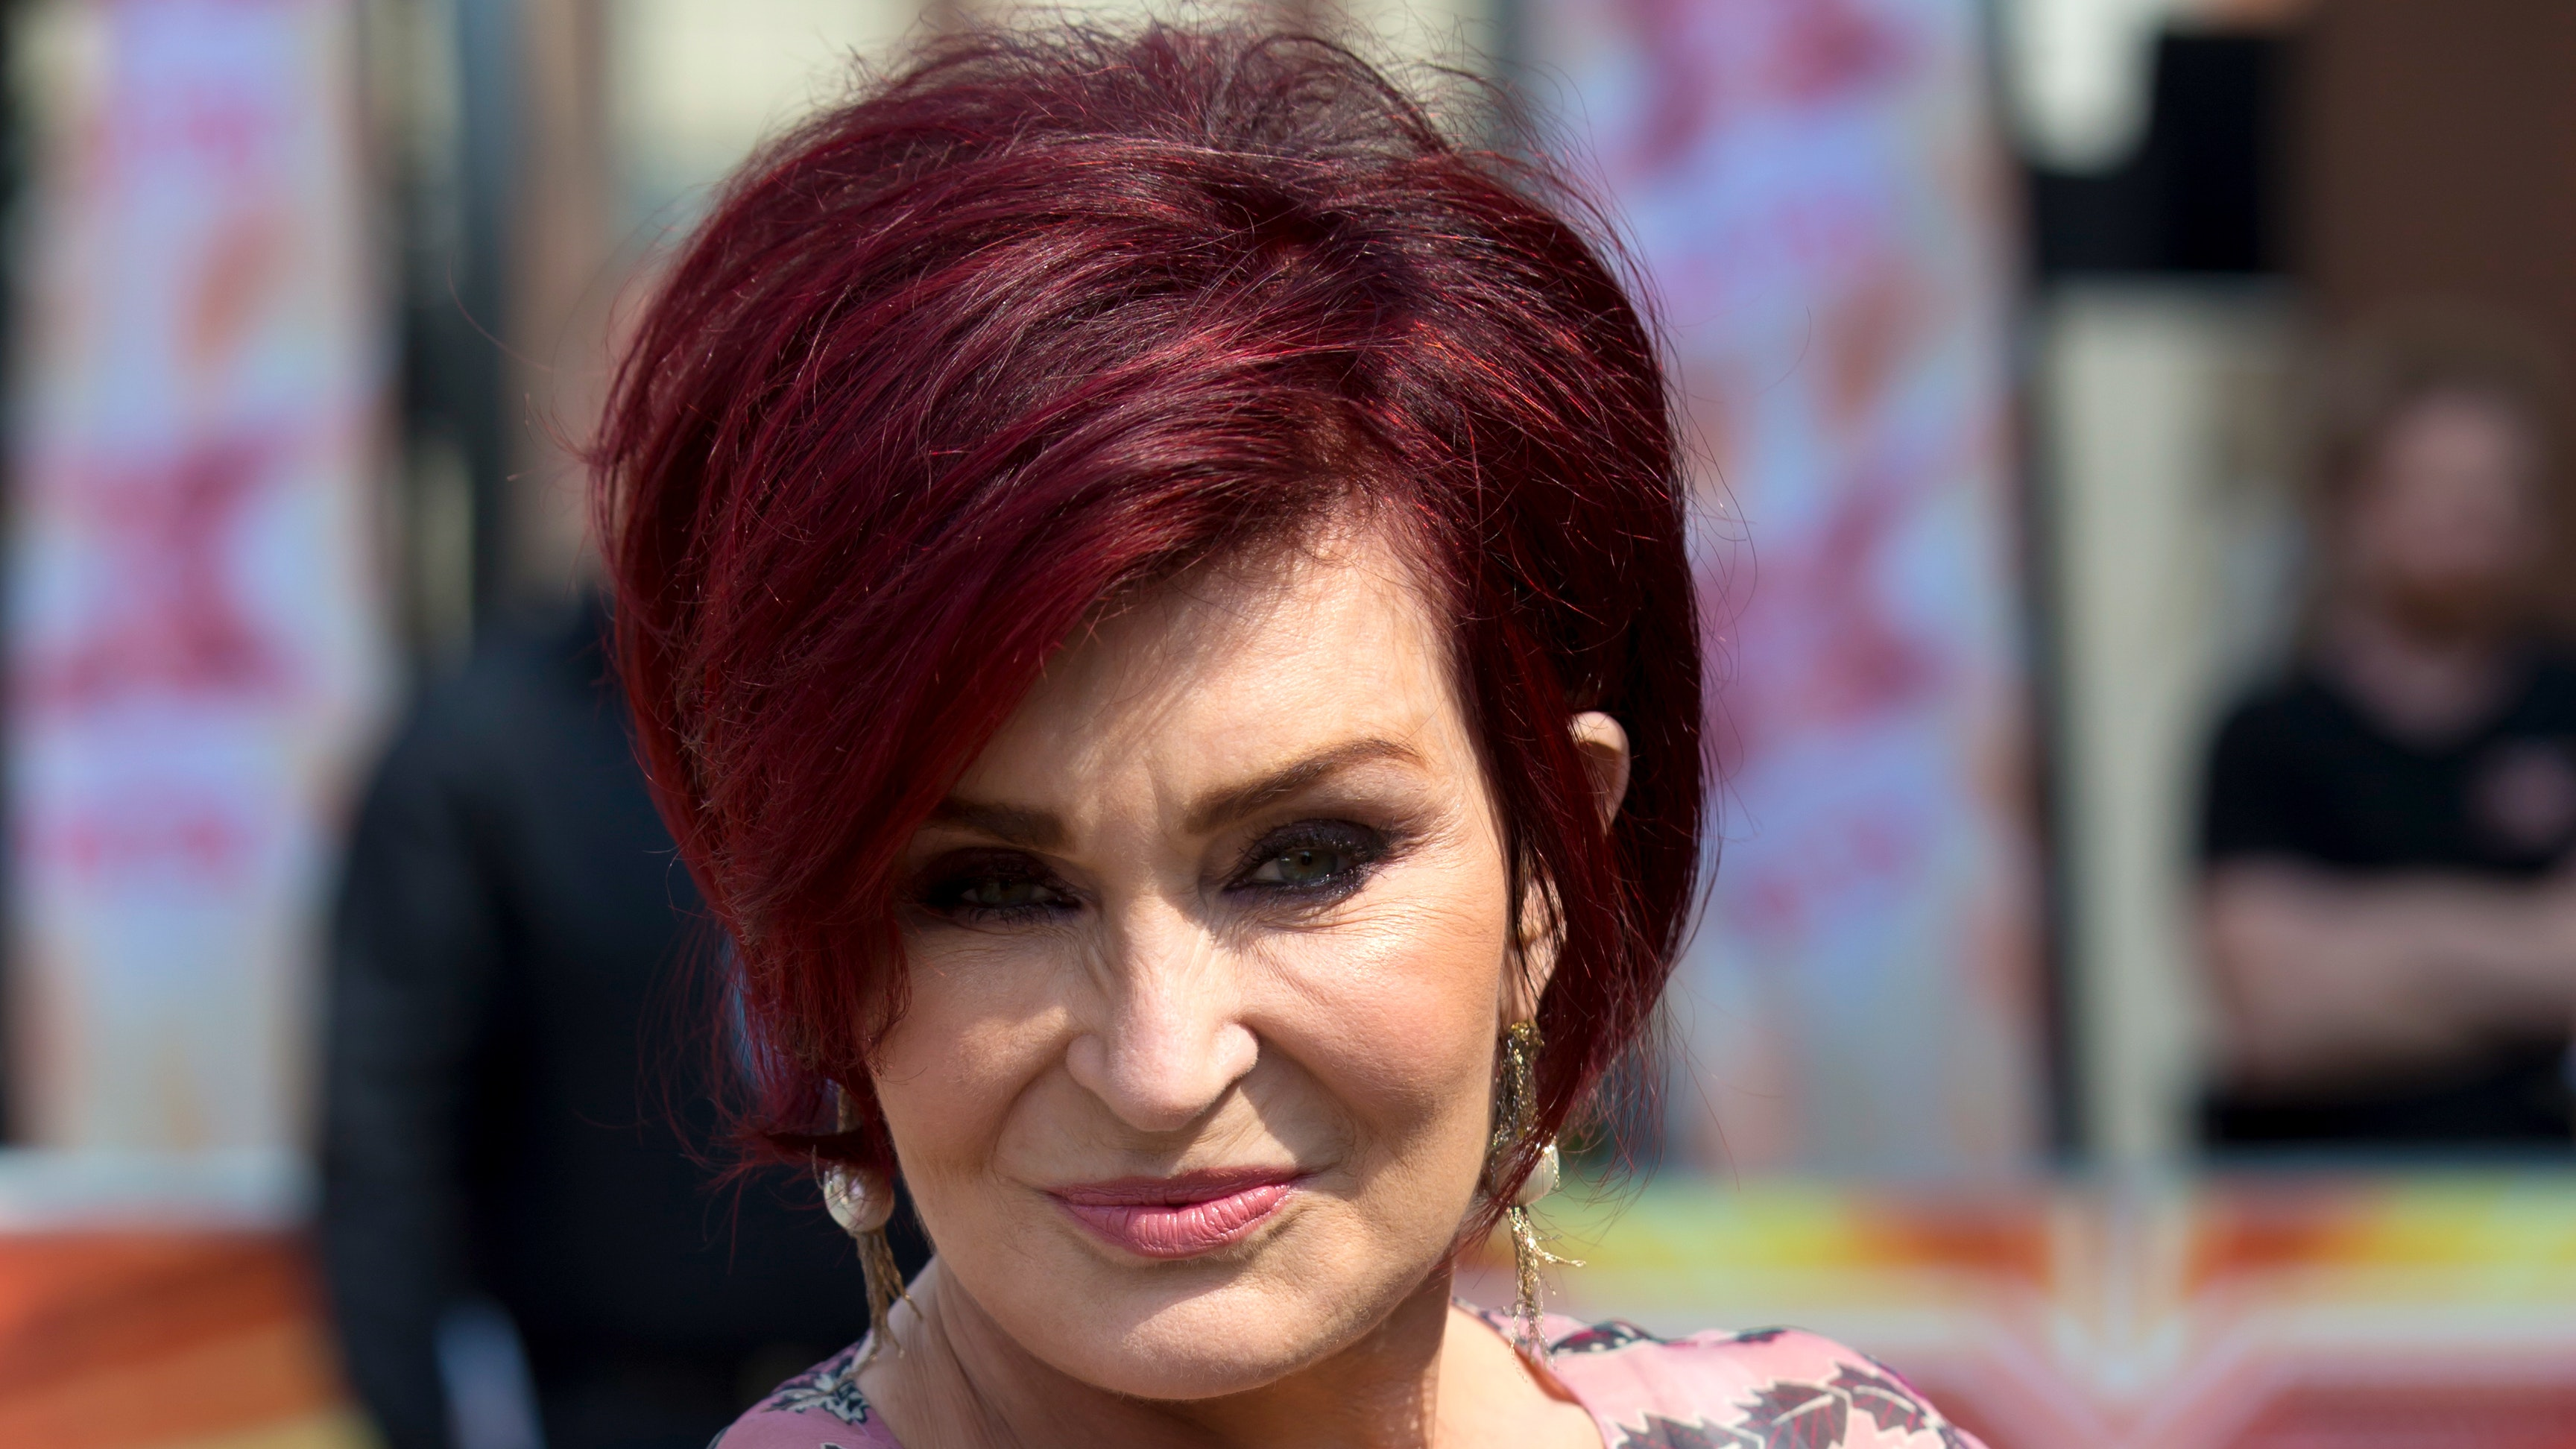 Sharon Osbourne Debuts 'Refreshed' New Look Following Facelift